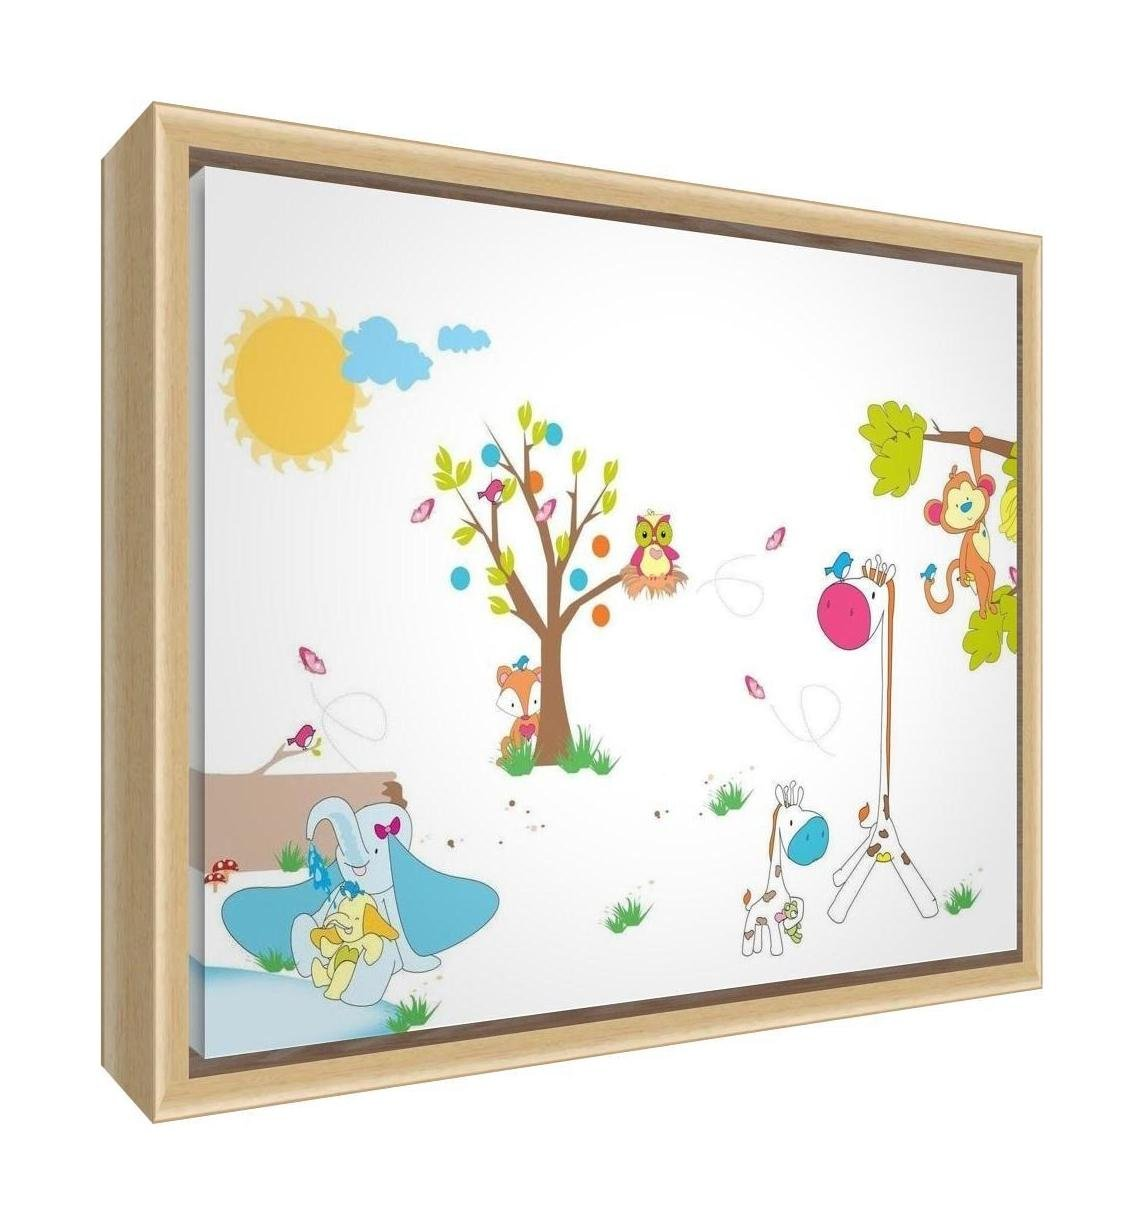 Feel Good Art Eco-Printed & Framed Nursery Canvas with Solid Natural Wooden Frame ≪Animals≫ Multicoloured, 64 x 44 x 3cm (Large) ANIMALS-1624FCNAT-12